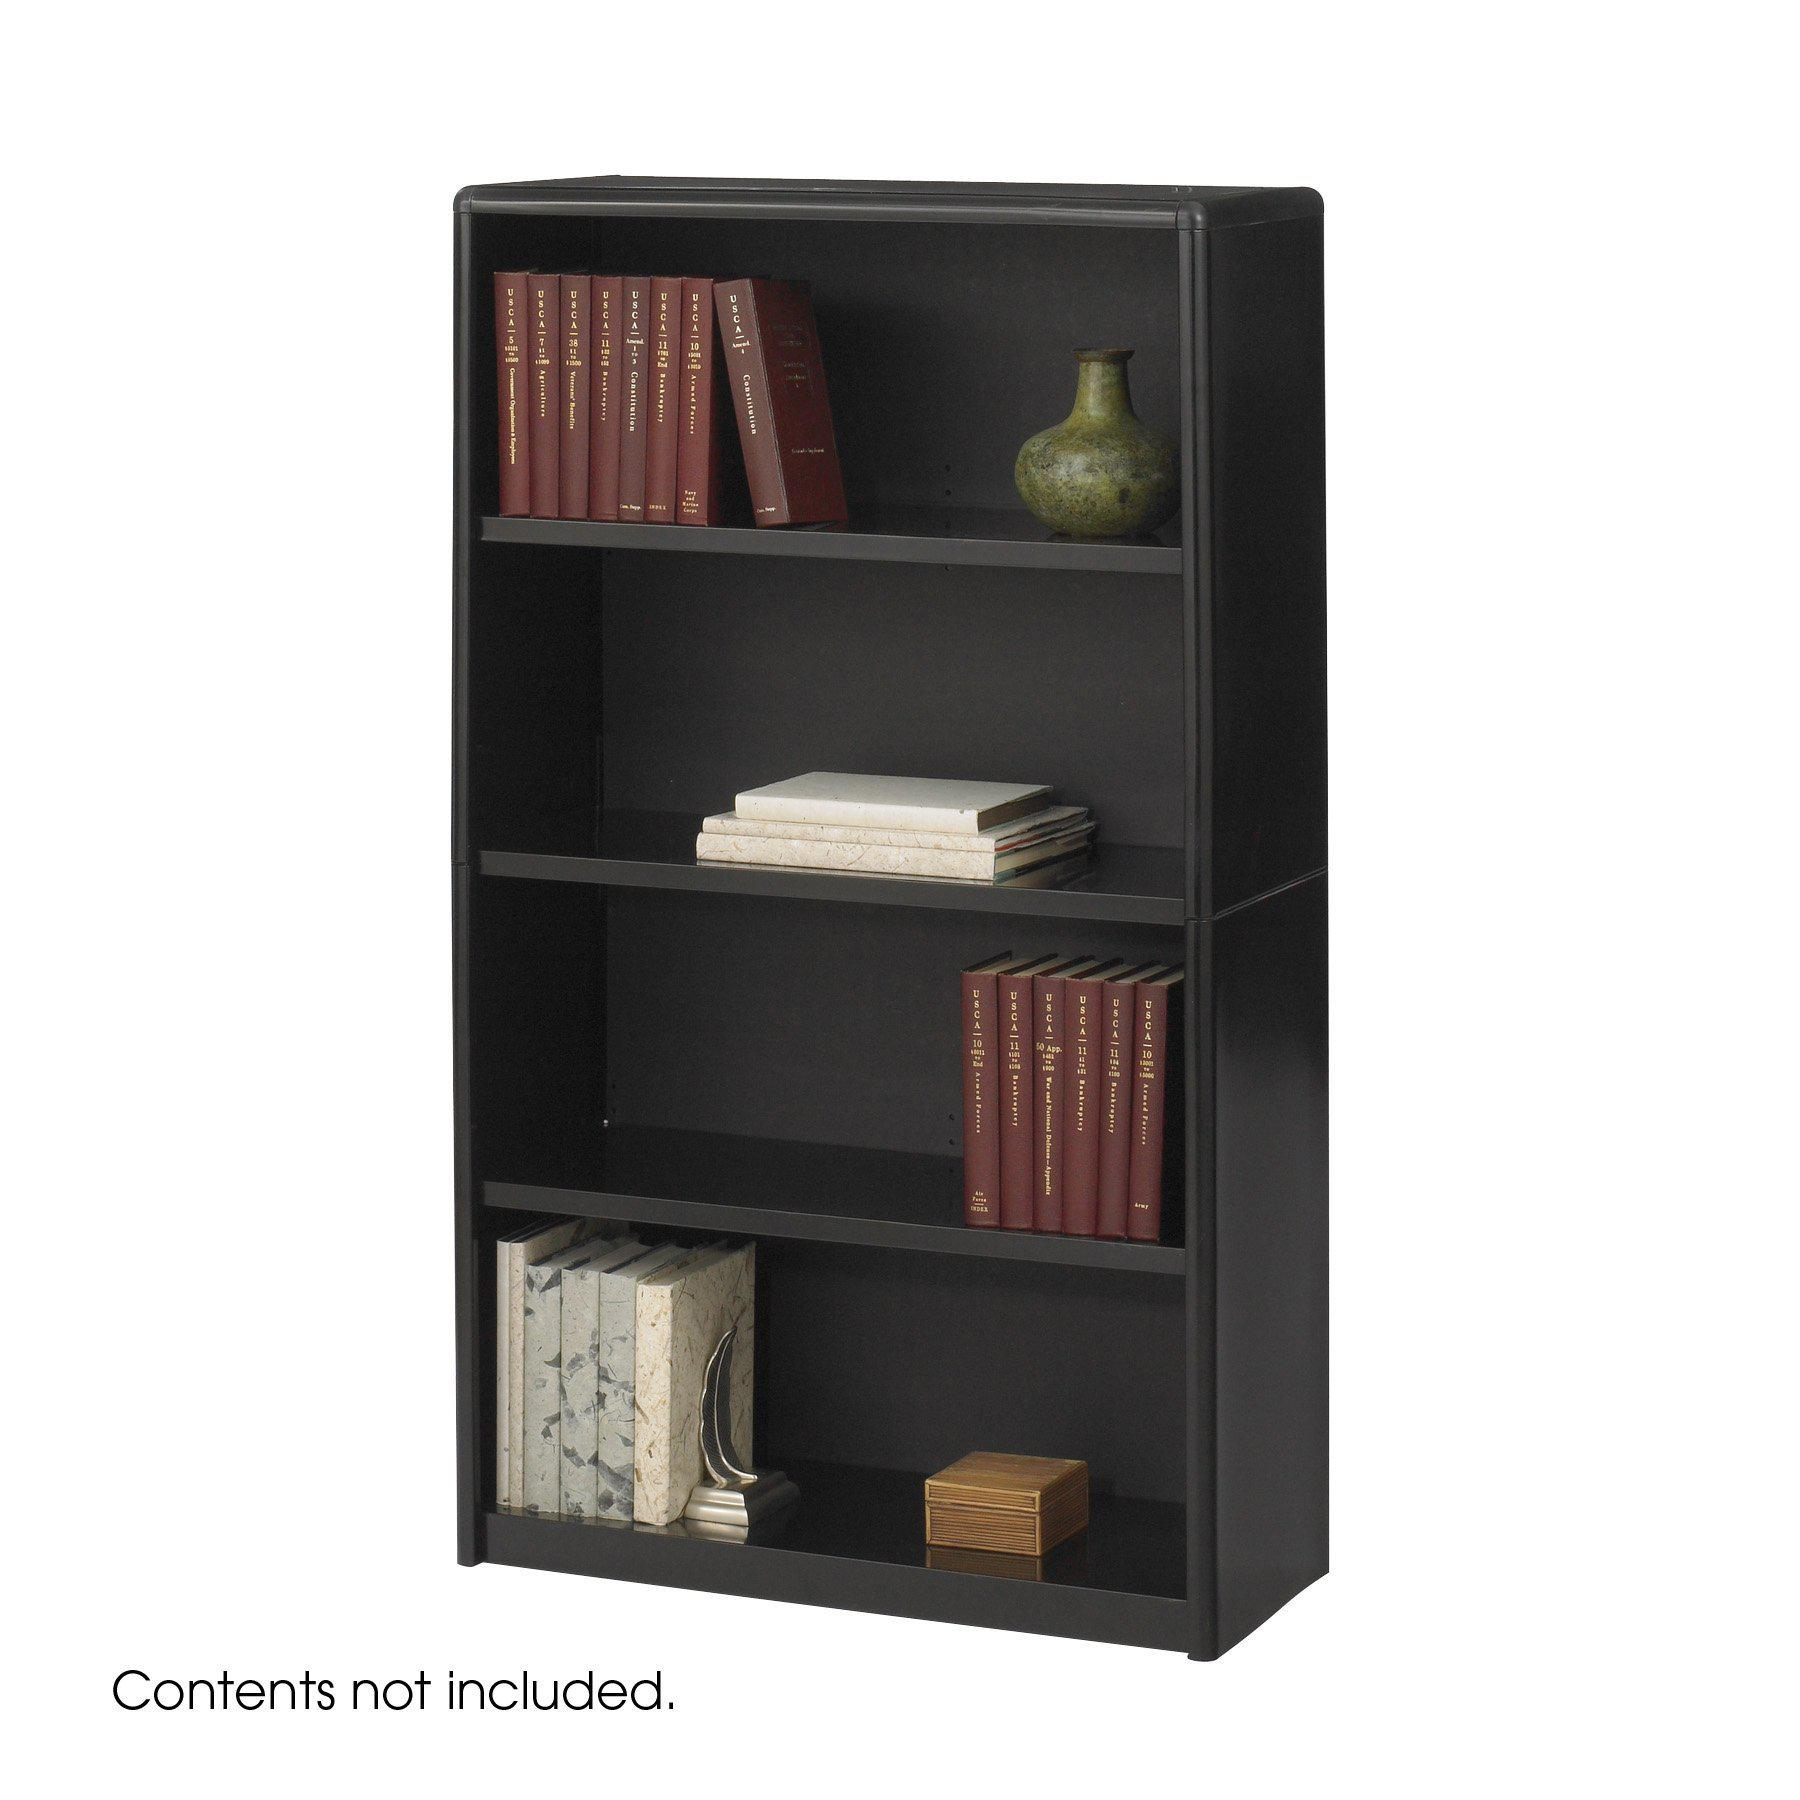 4-Shelf ValueMate® Economy Bookcase